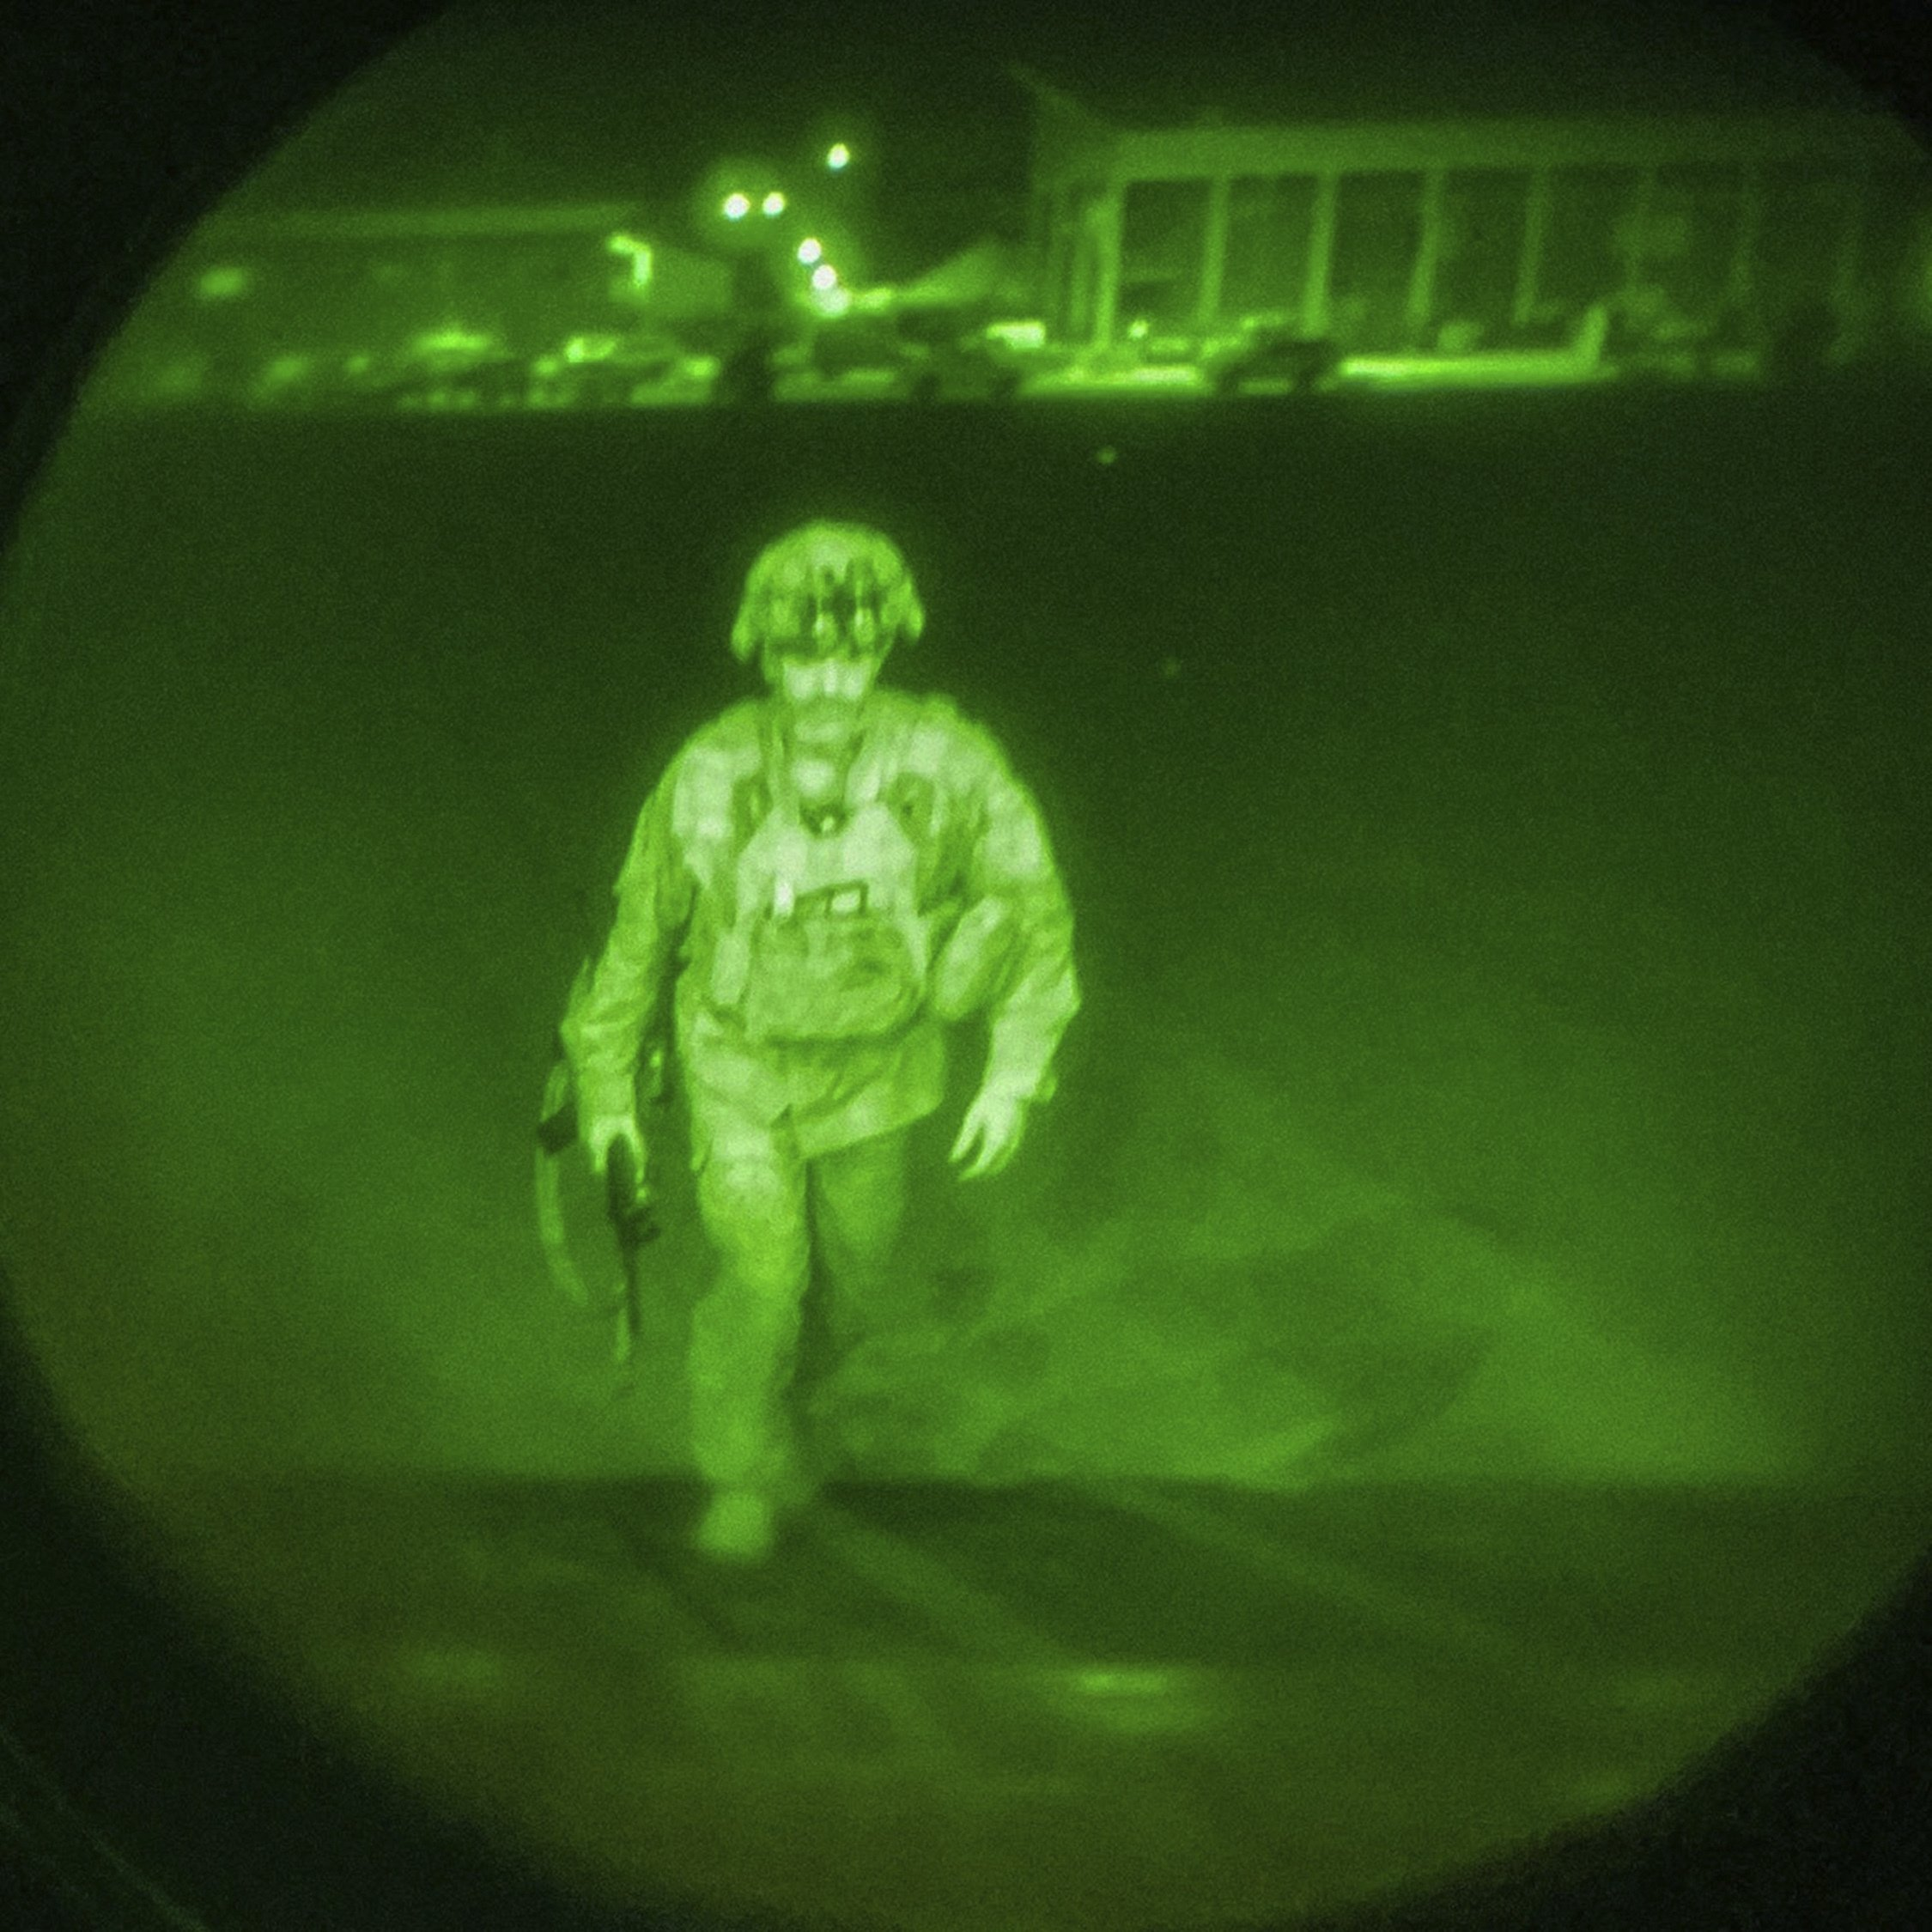 In this image made through a night vision scope and provided by U.S. Central Command, Maj. Gen. Chris Donahue, commander of the U.S. Army 82nd Airborne Division, XVIII Airborne Corps, boards a C-17 cargo plane at Hamid Karzai International Airport in Kabul, Afghanistan, Aug. 30, 2021, as the final American service member to depart Afghanistan. (U.S. Central Command via AP)